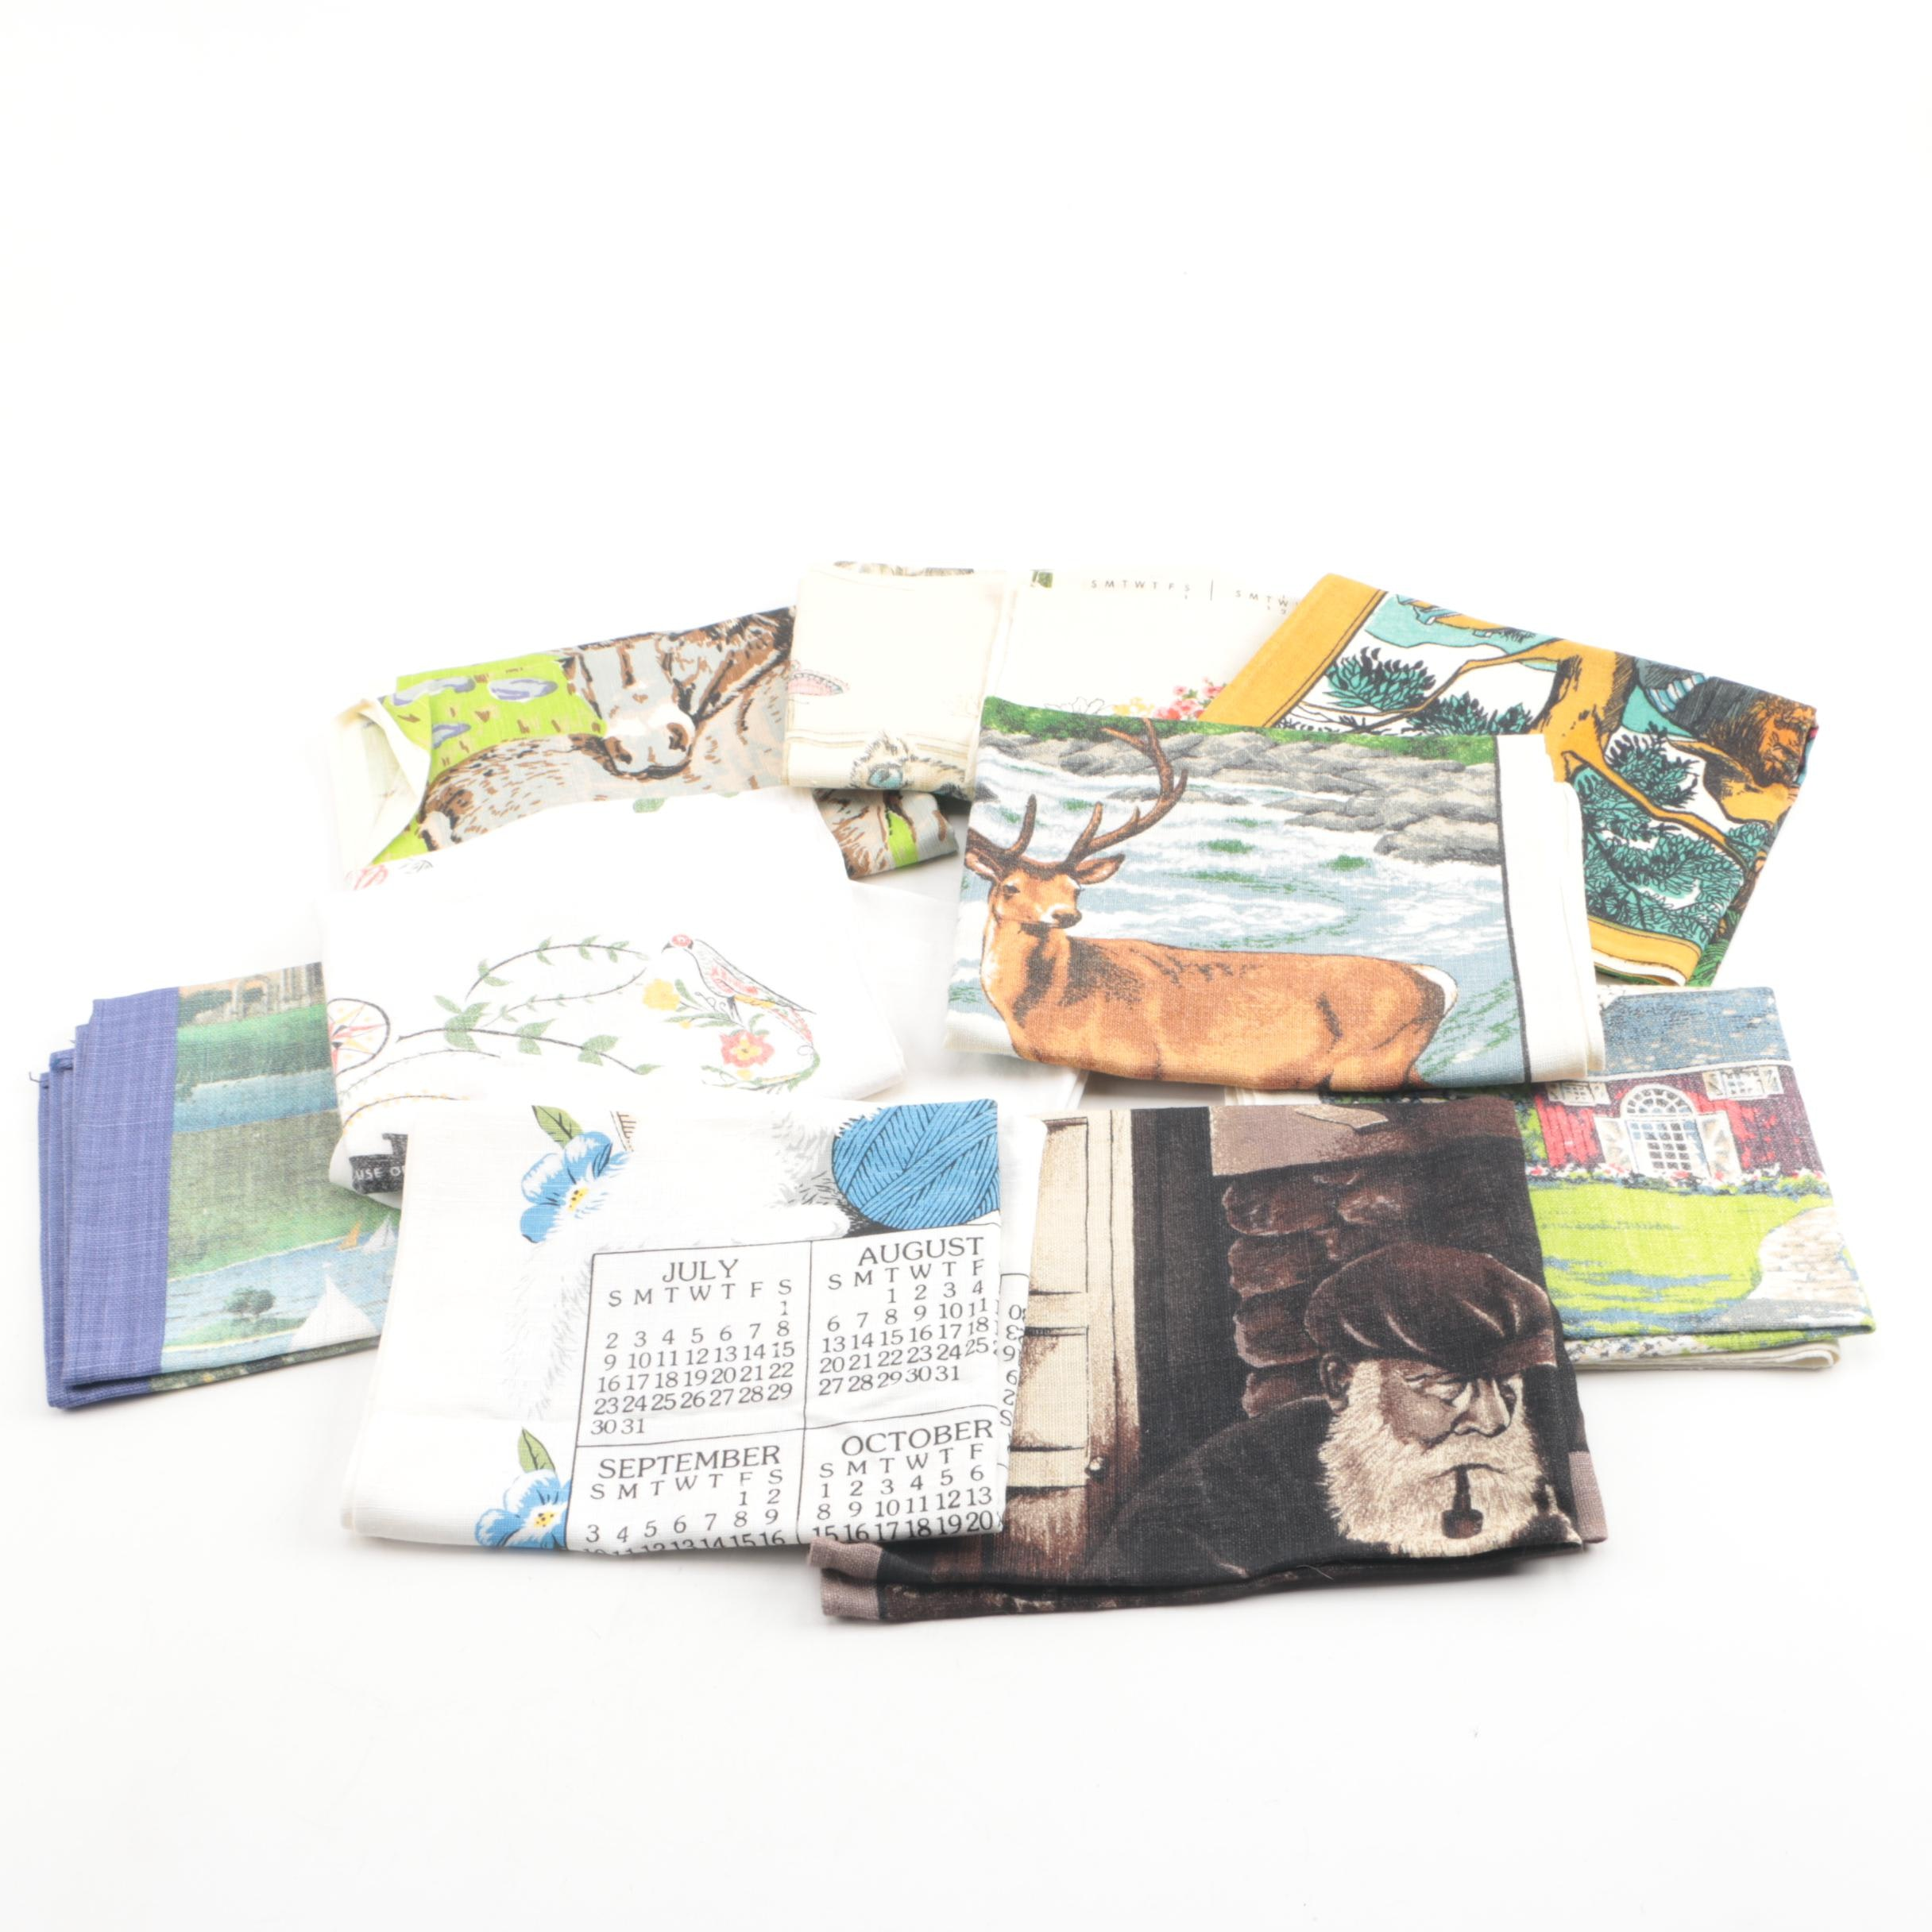 Printed Linens and Calendars Including Irish linen